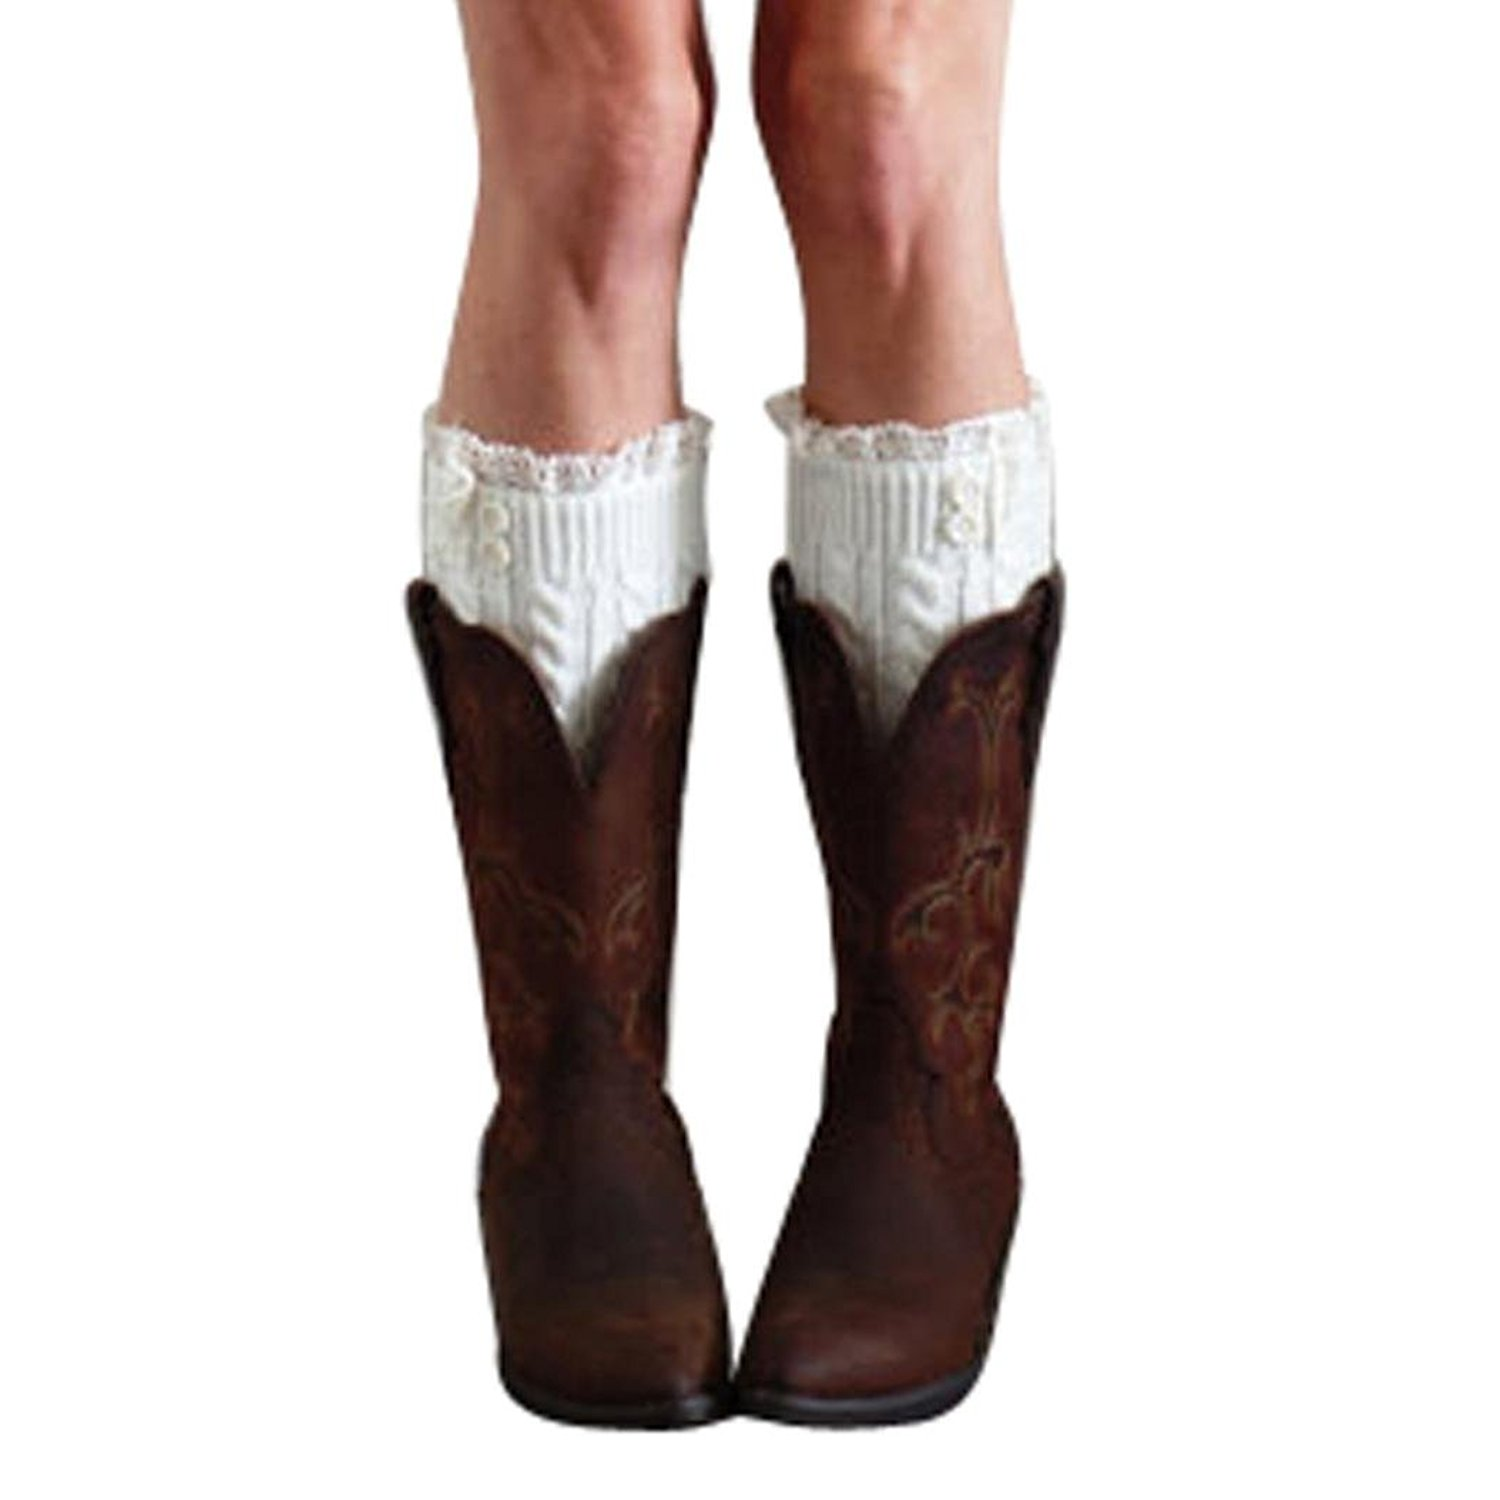 Inkach Womens Boot Socks | Knee High Leg Warmers| Lace Cuffs Leggings Warm Socks